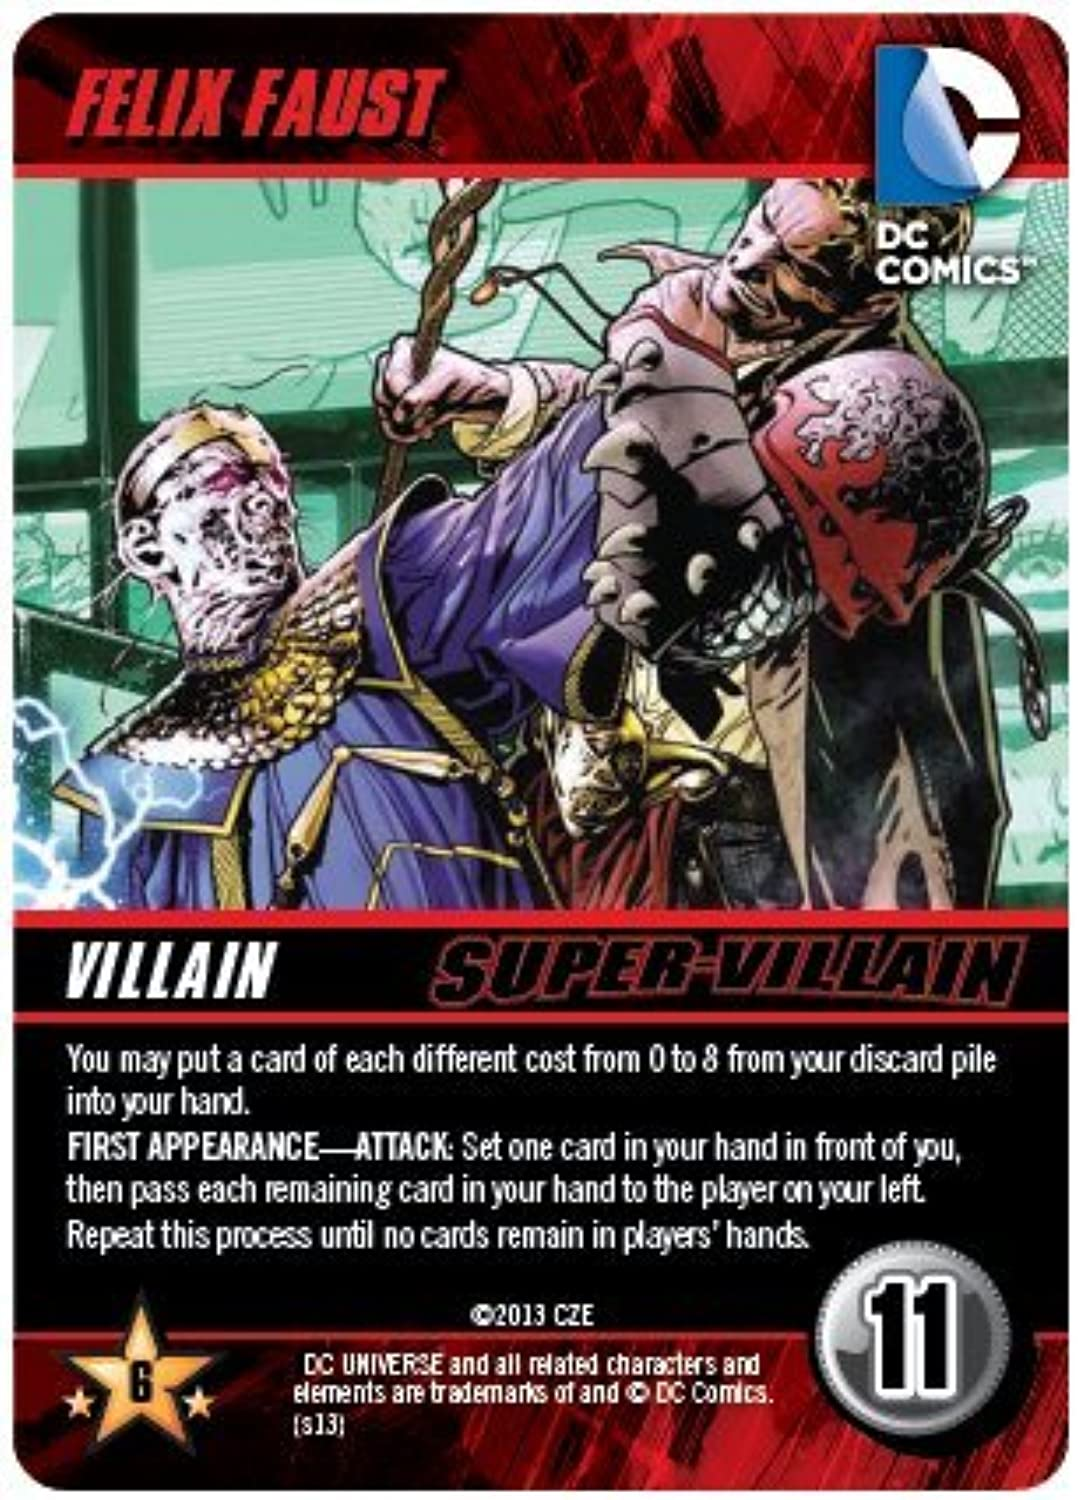 Felix Faust Super Villain DC Comics Deck Building Game Promo by DC Comics